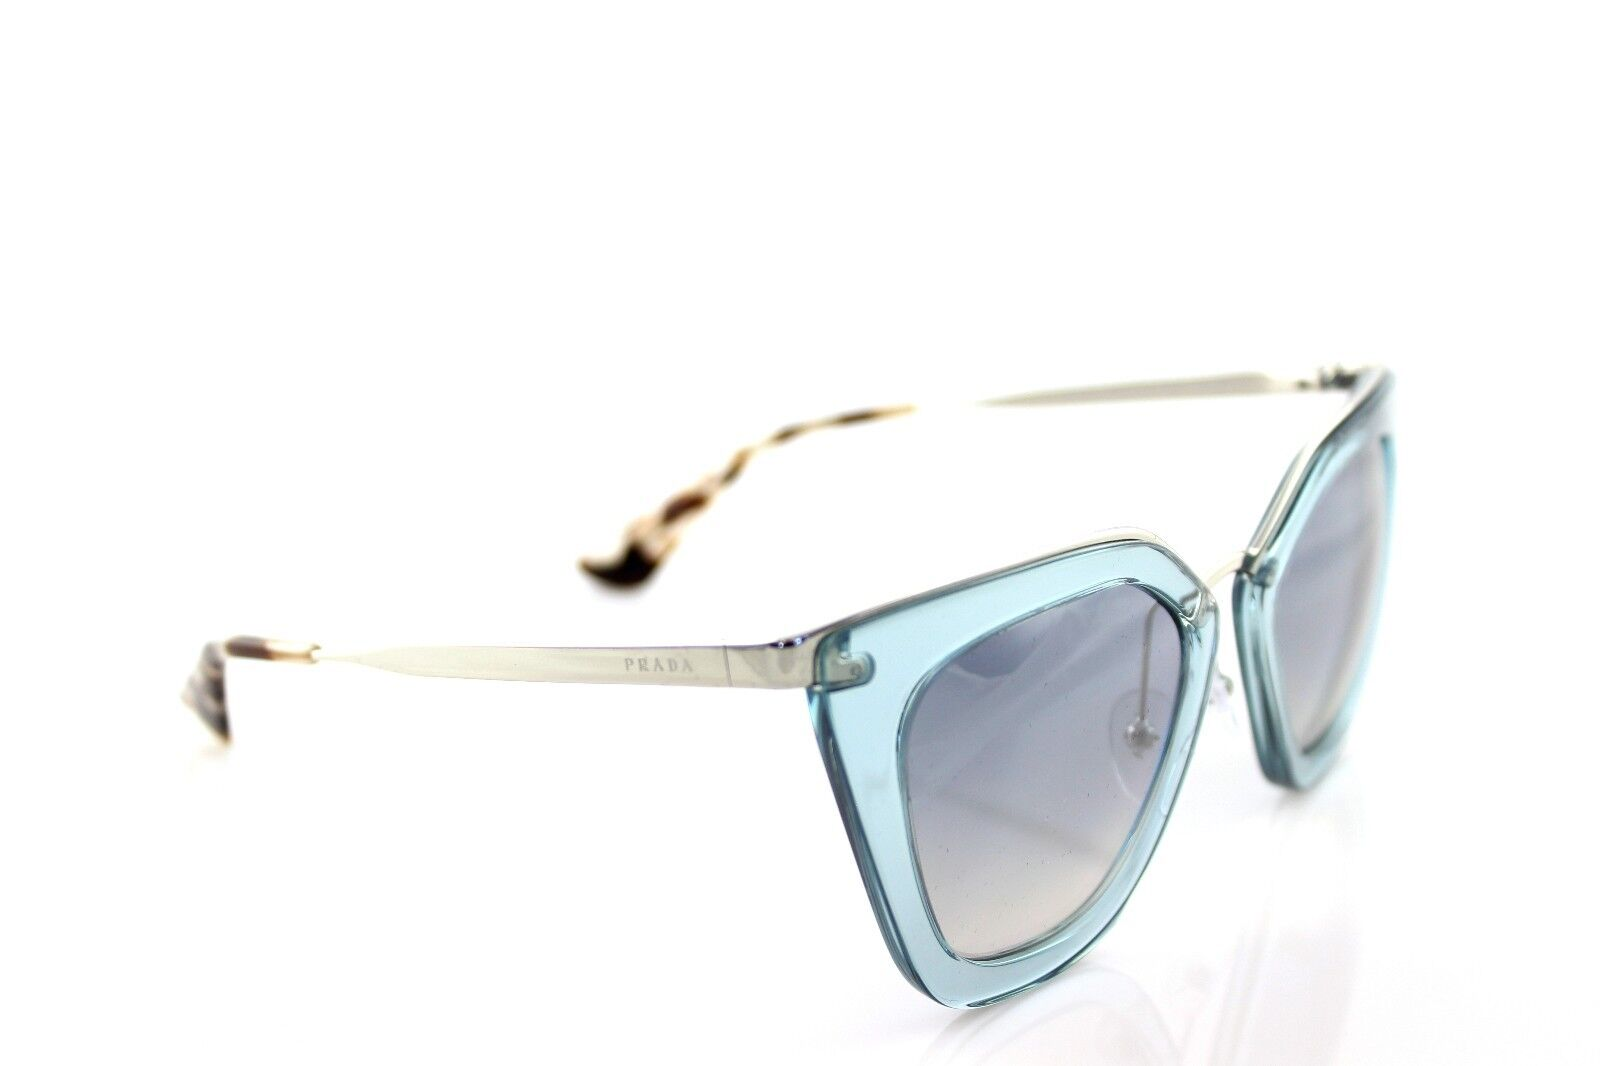 00be69446f9 RARE Genuine PRADA Cinema Evolution Transparent Azure Sunglasses Spr 53s Vys-5r0  for sale online